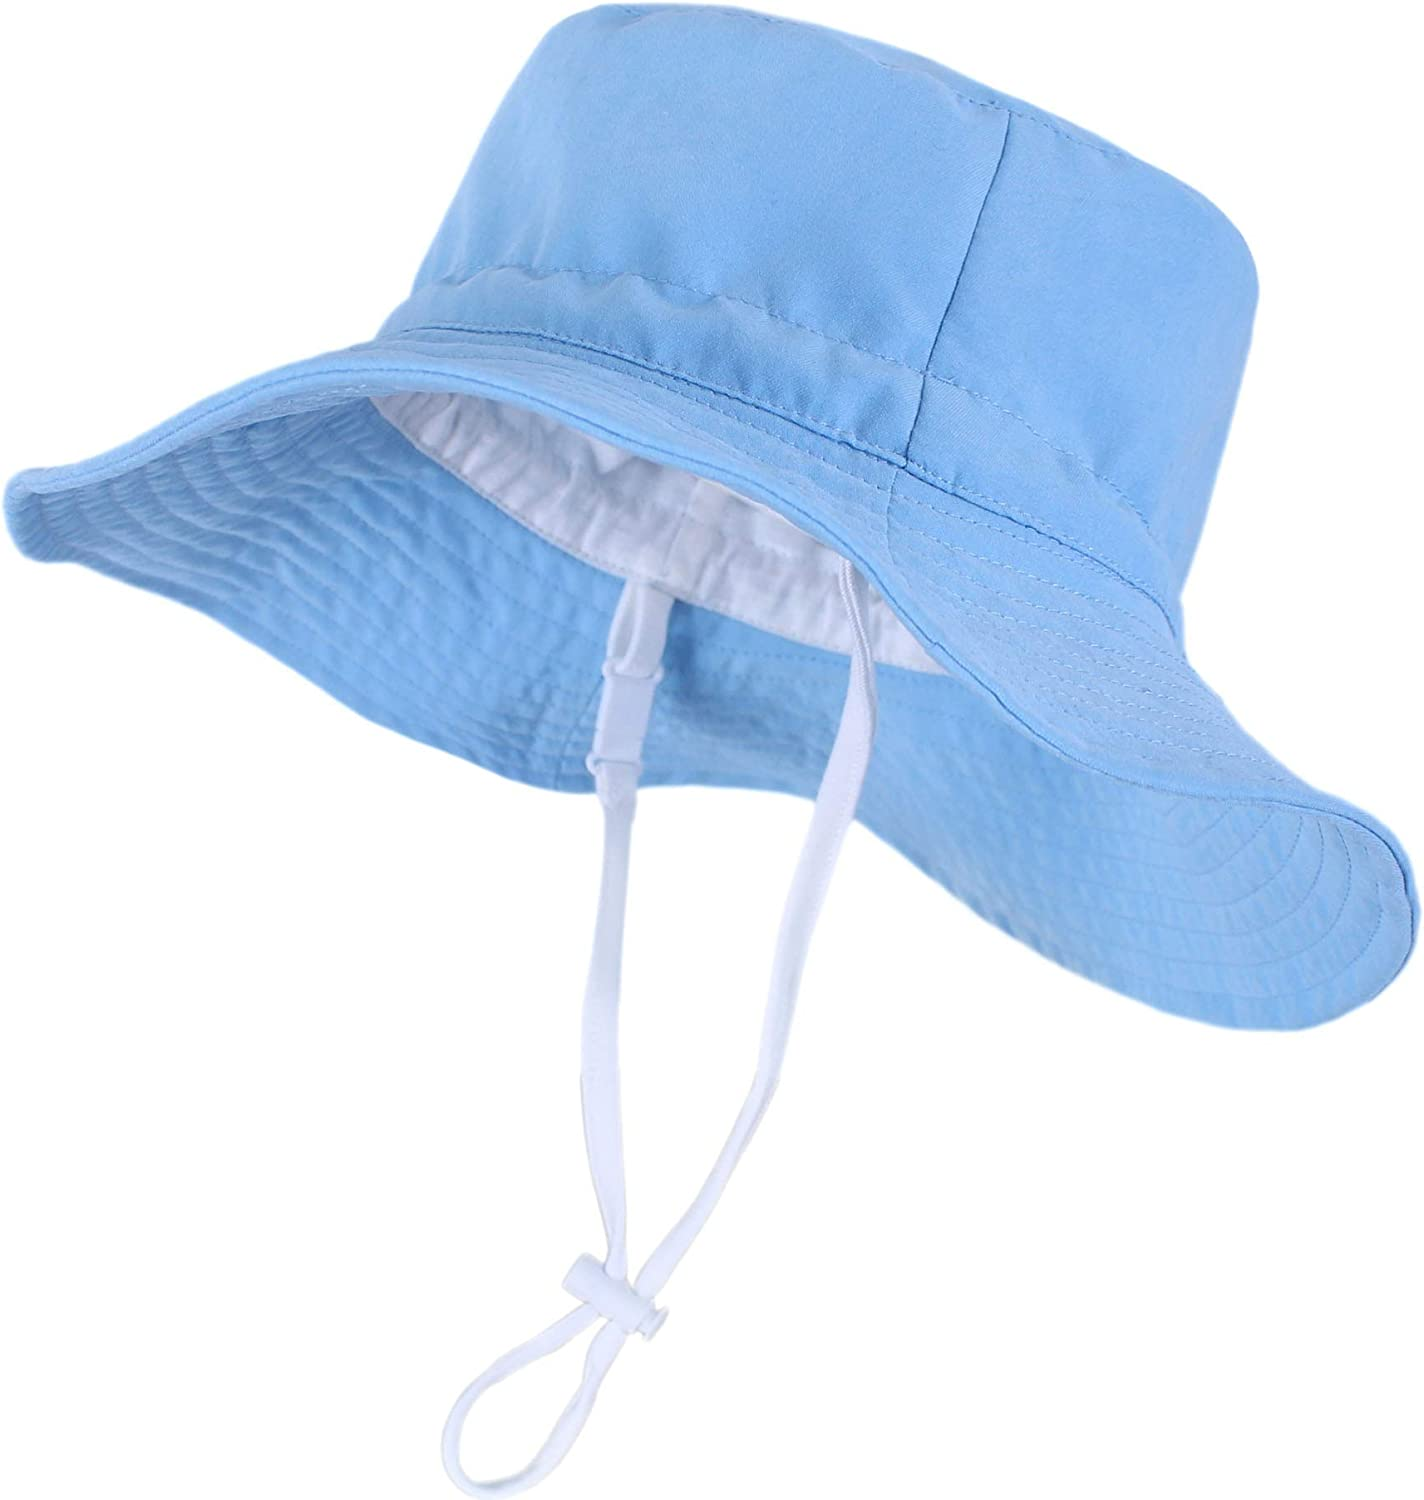 Toddler Sun-Hat Protection Wide-Brim Bucket Hats Adjustable Fit 0-4Years